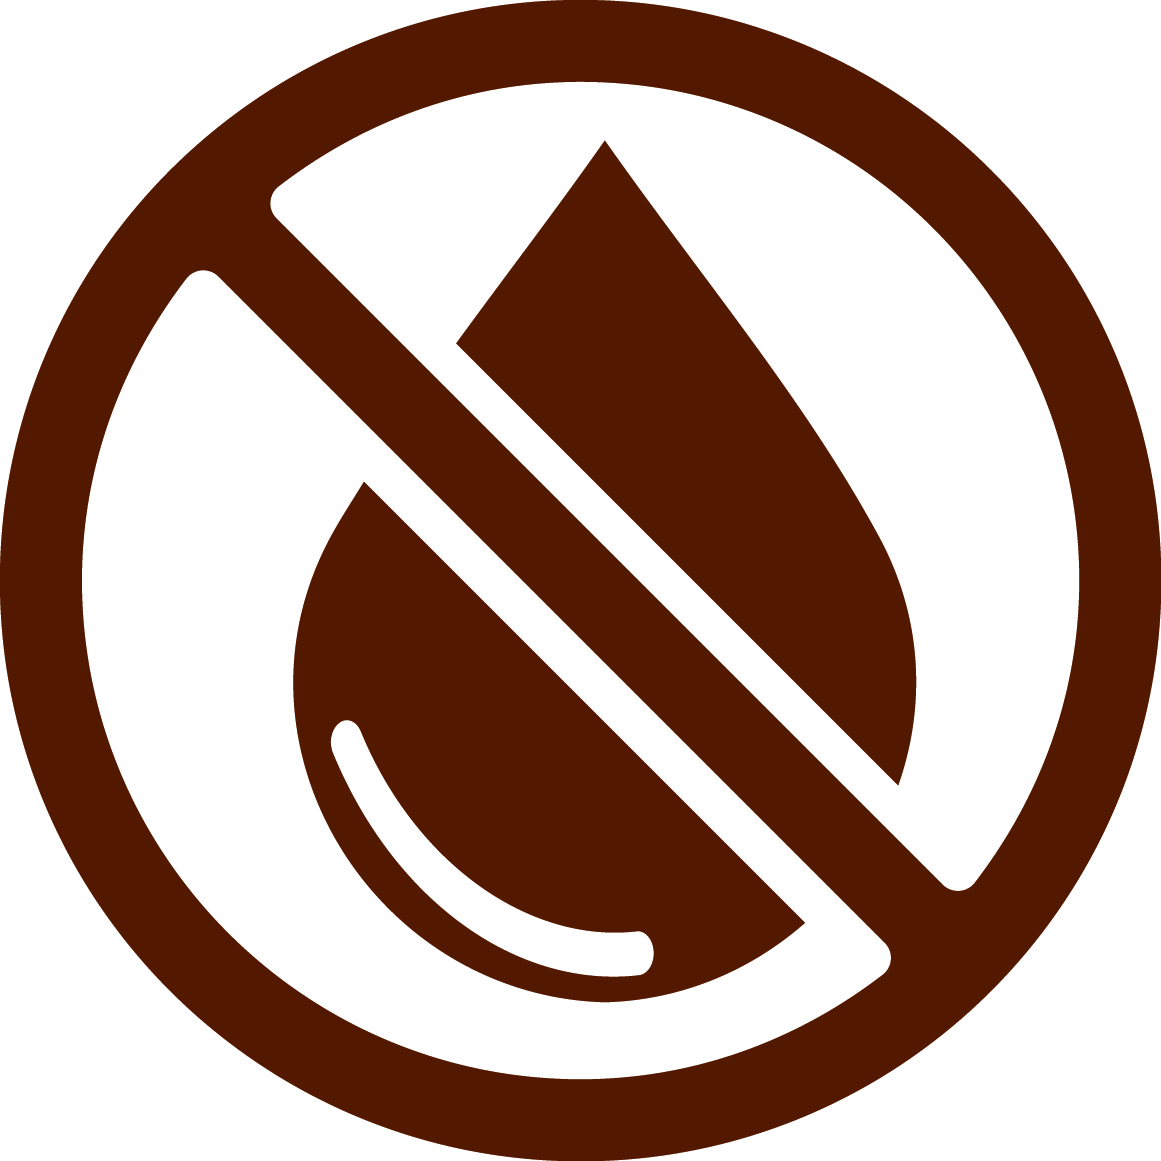 Trans-Fat-Free icon image